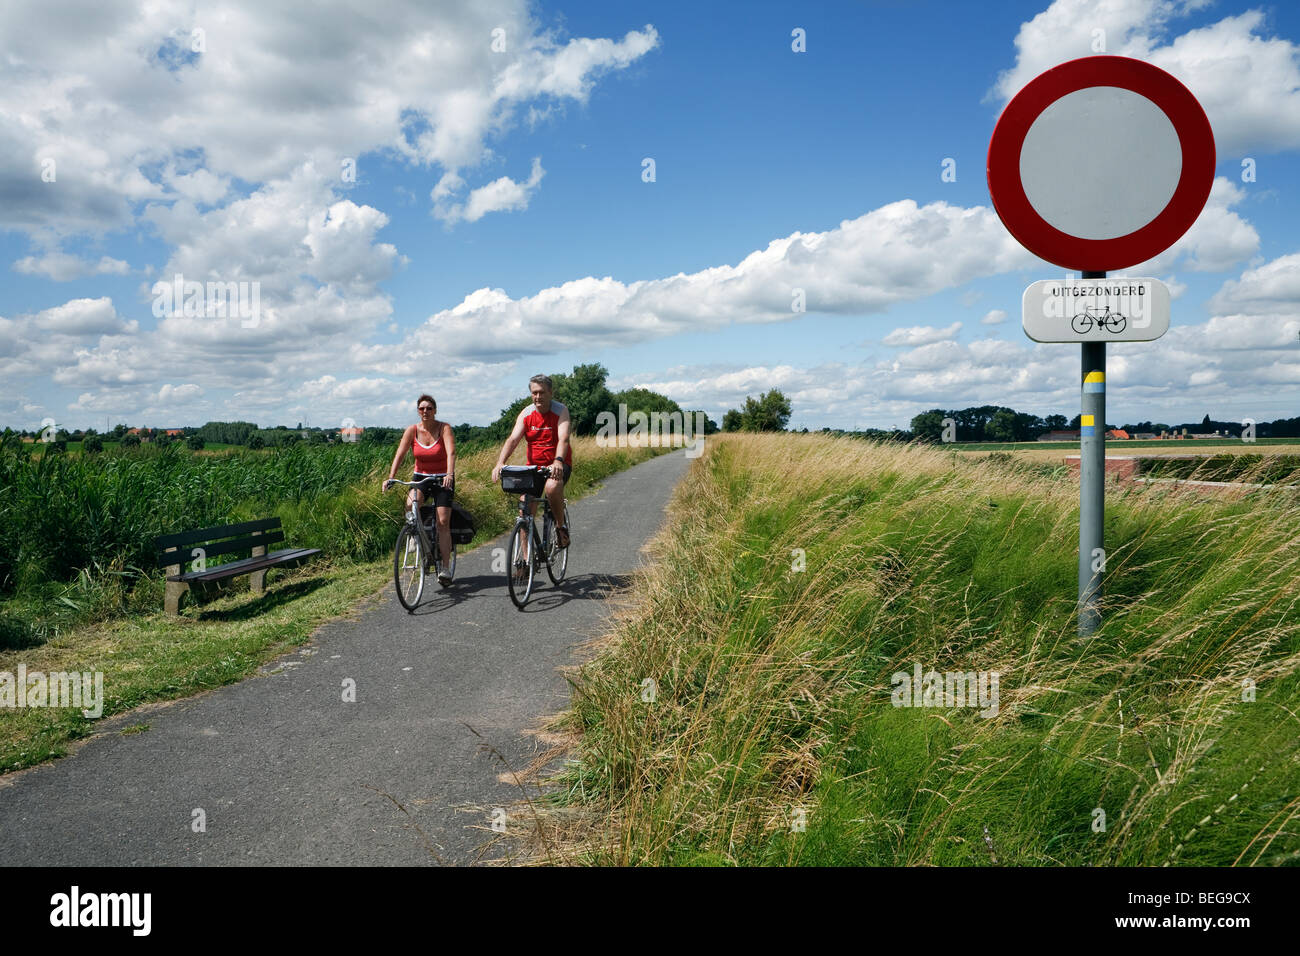 Cyclists on cycle path through North Belgian countryside. - Stock Image